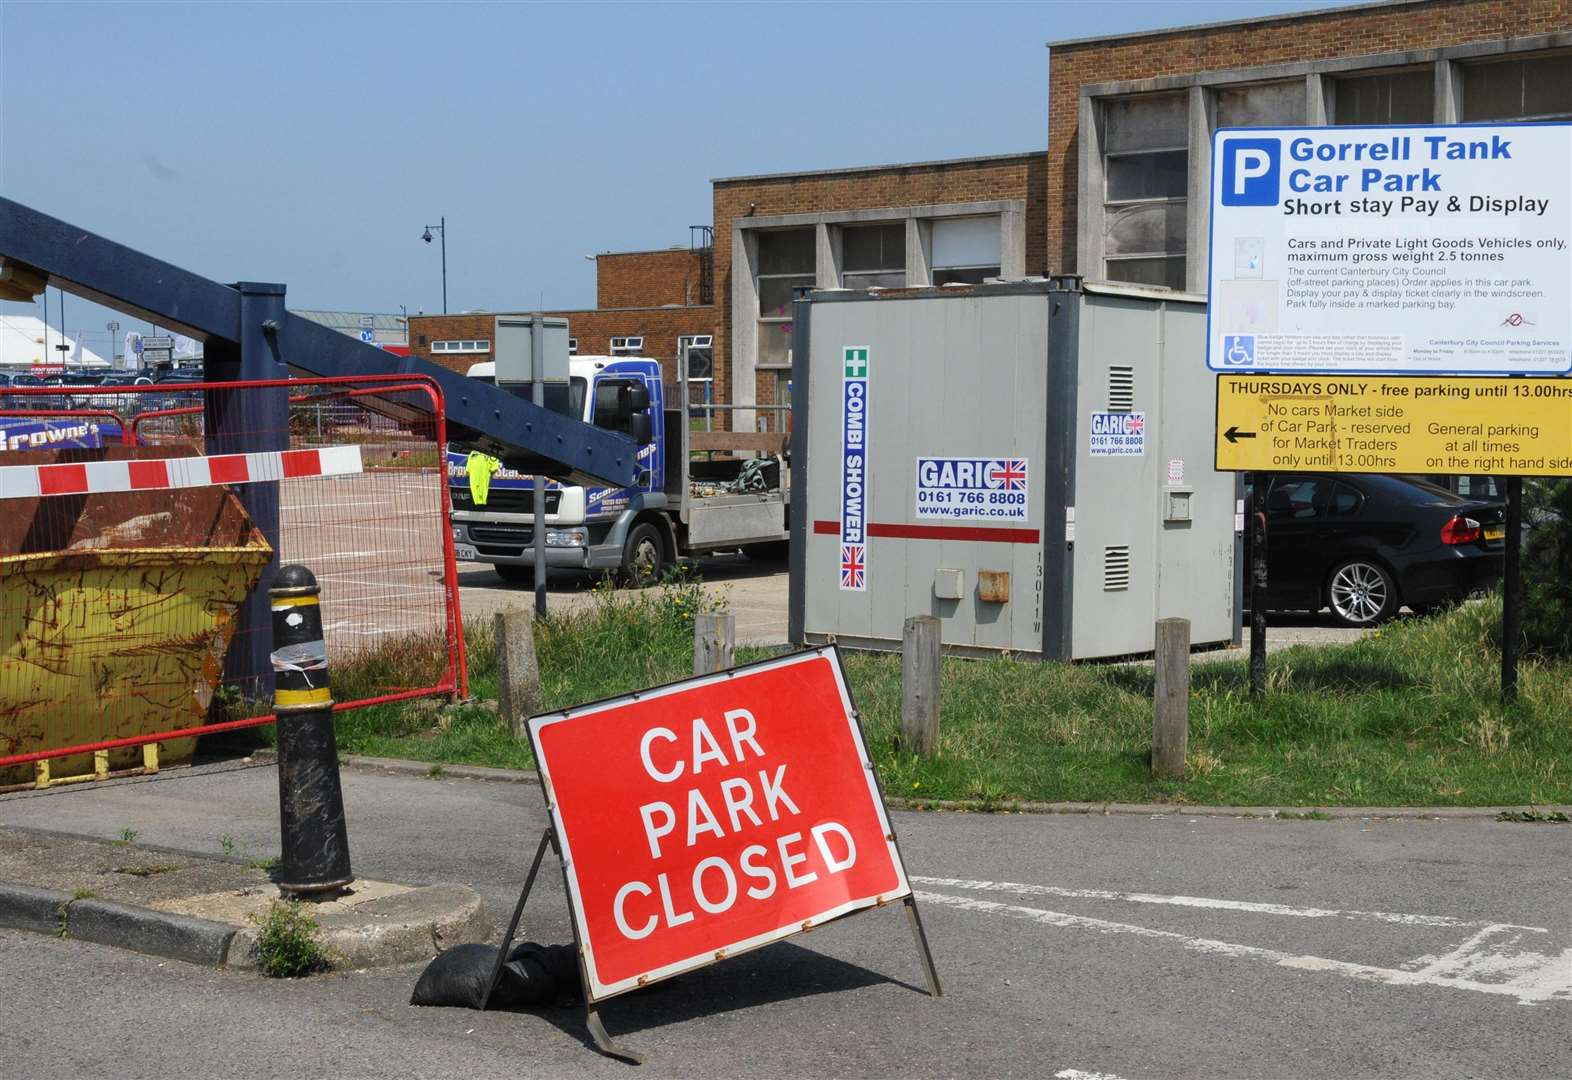 Seaside visitors face parking misery over the bank holiday weekend